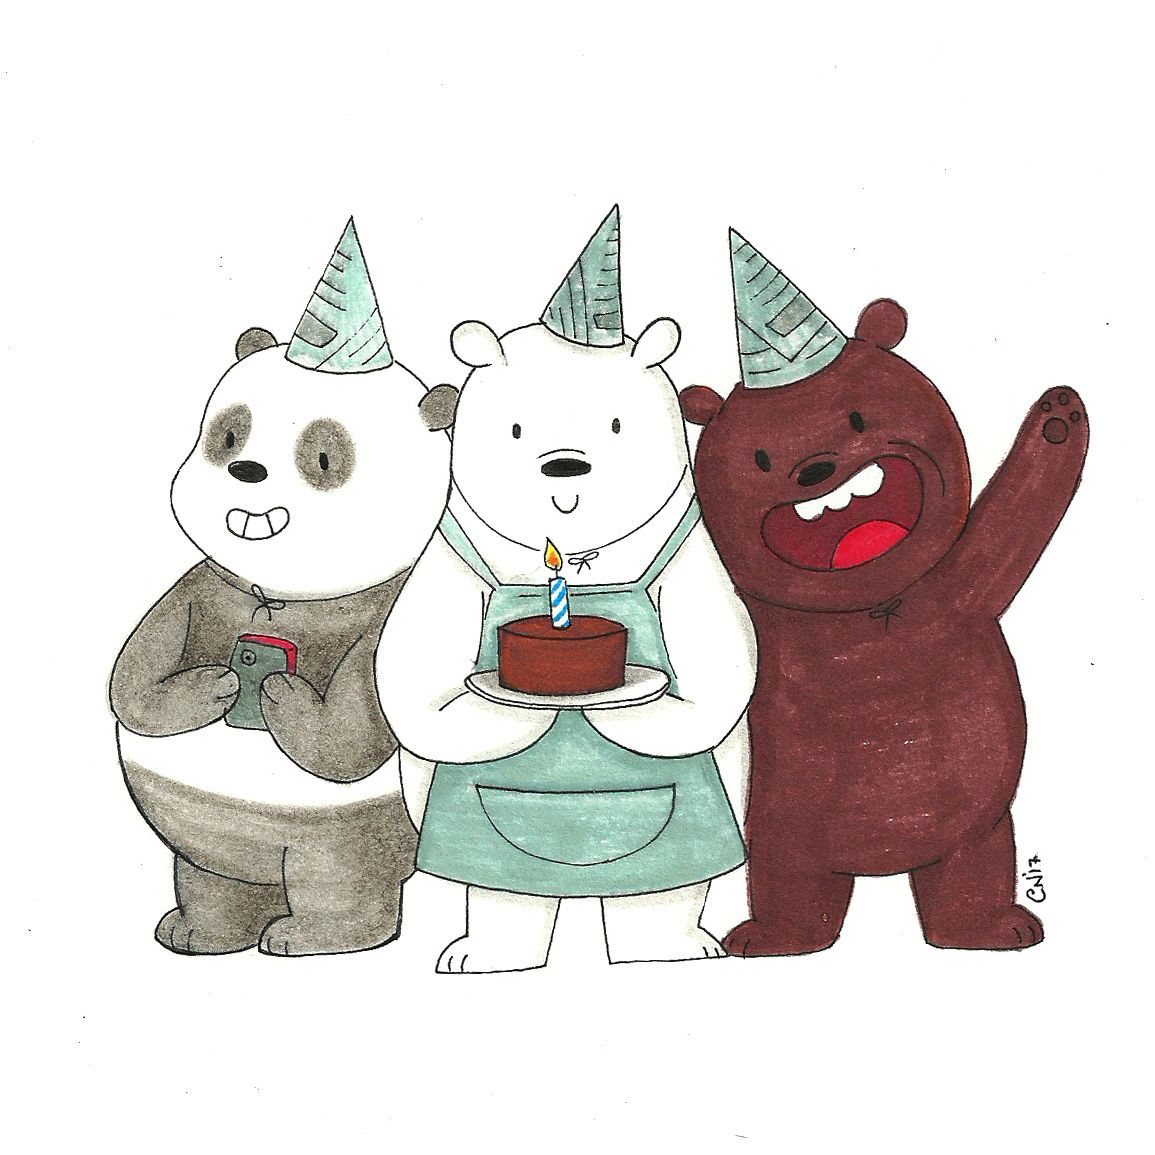 Constana nobres illustrations we bare bears birthday card constana nobres illustrations we bare bears birthday card bookmarktalkfo Images